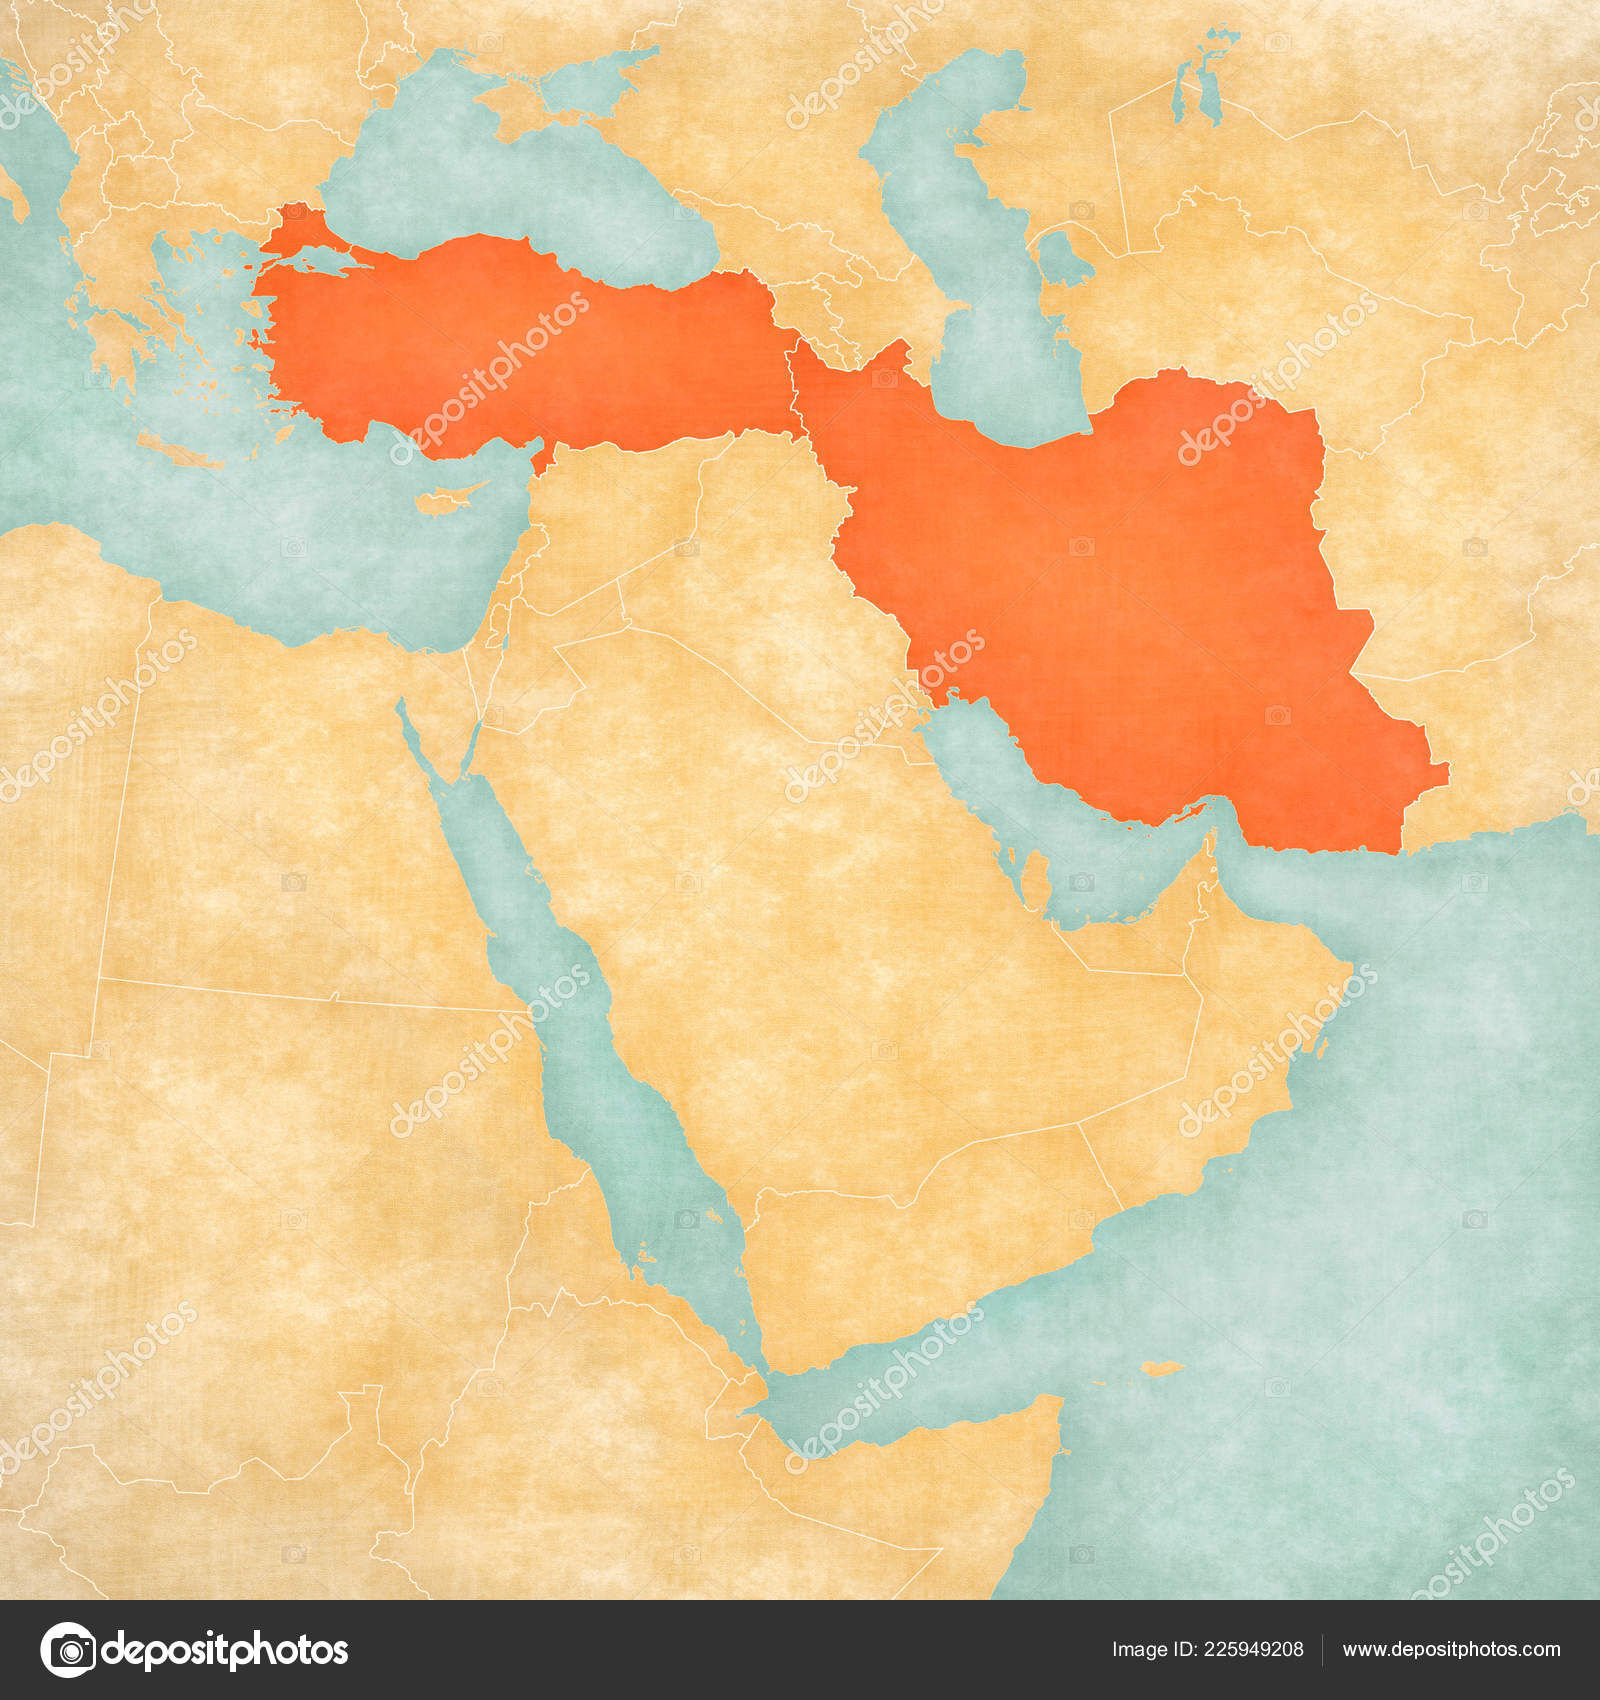 Turkey Iran Map Middle East Western Asia Soft Grunge Vintage ...